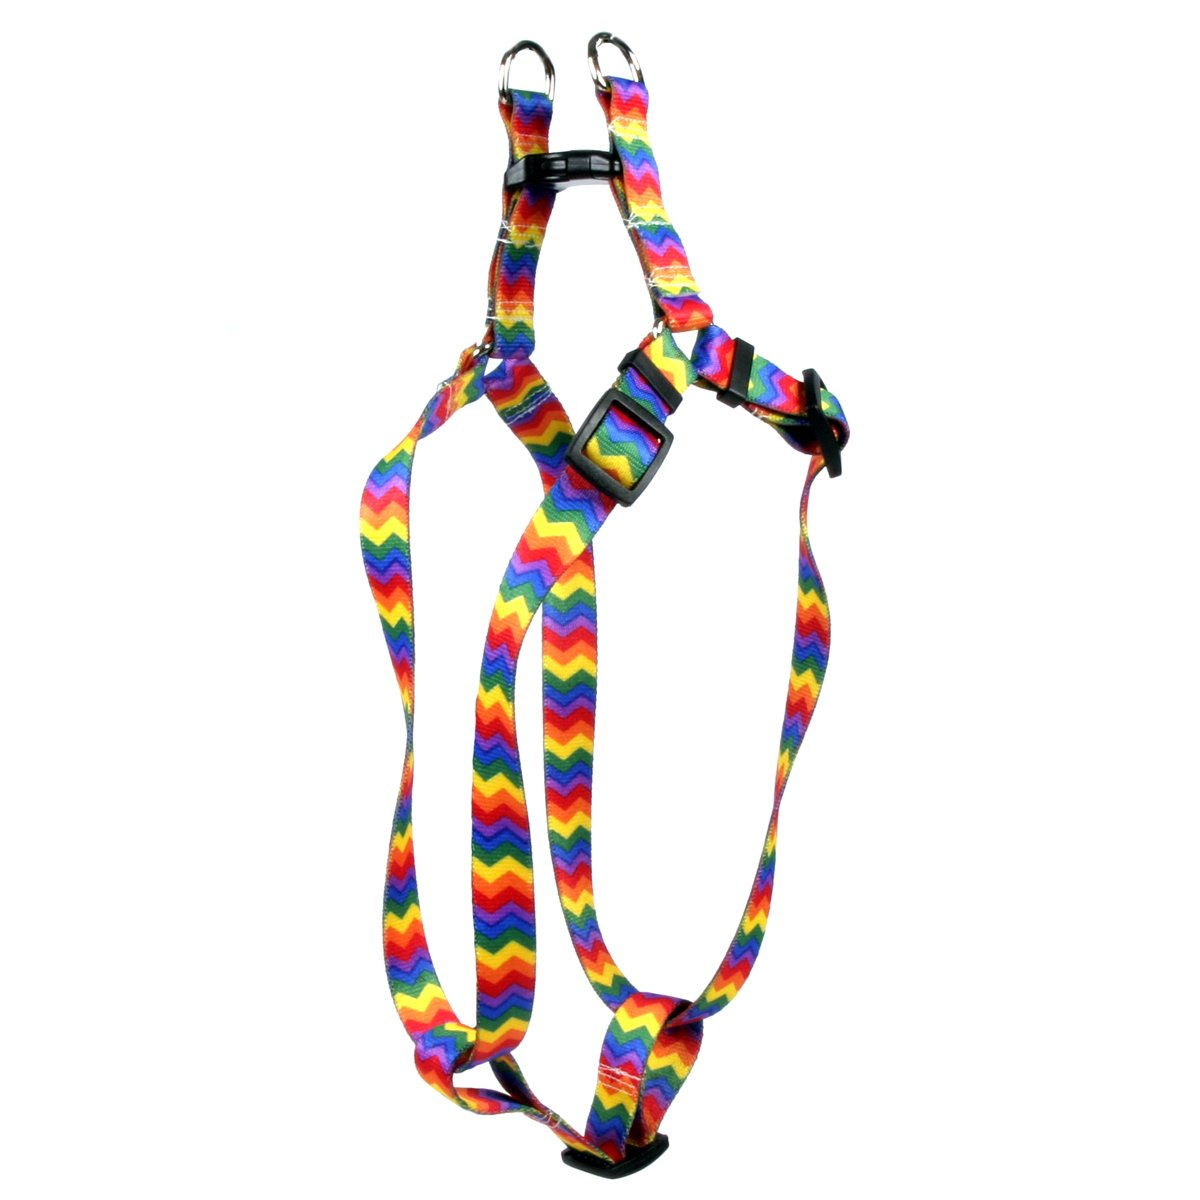 Yellow Dog Design Rainbow Chevron Step-in Dog Harness, X-Small-3/8 Wide and fits Chest of 4.5 to 9''